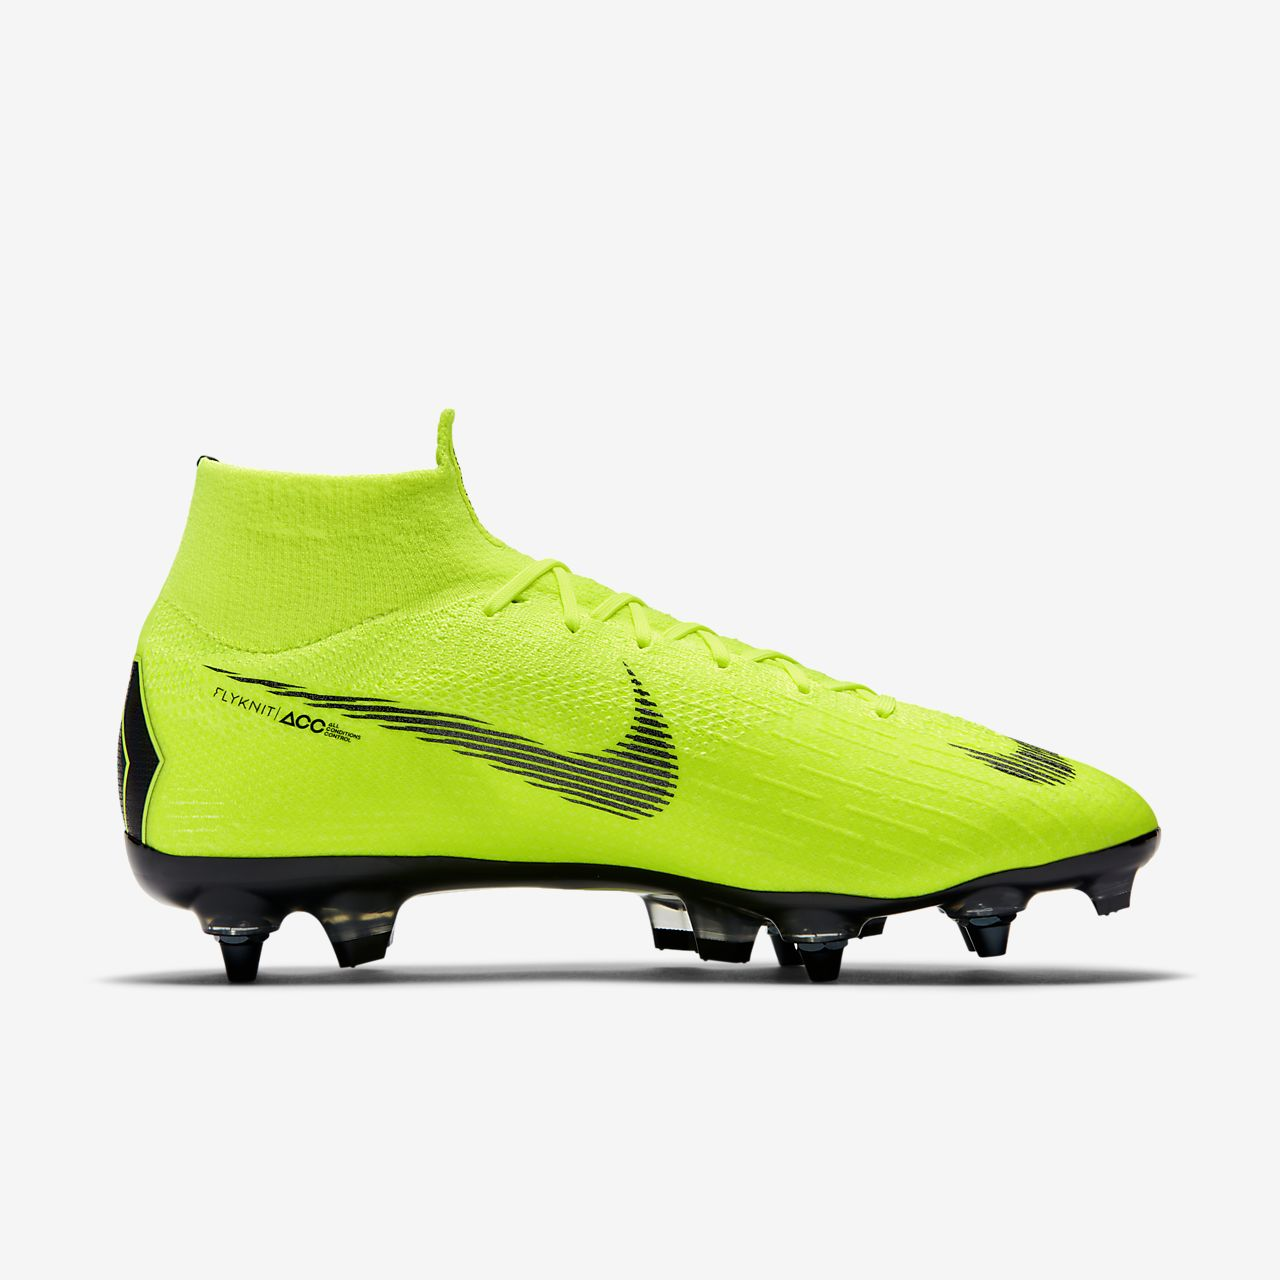 a1b47bc818 ... Nike Mercurial Superfly 360 Elite SG-PRO Anti-Clog Soft-Ground Football  Boot